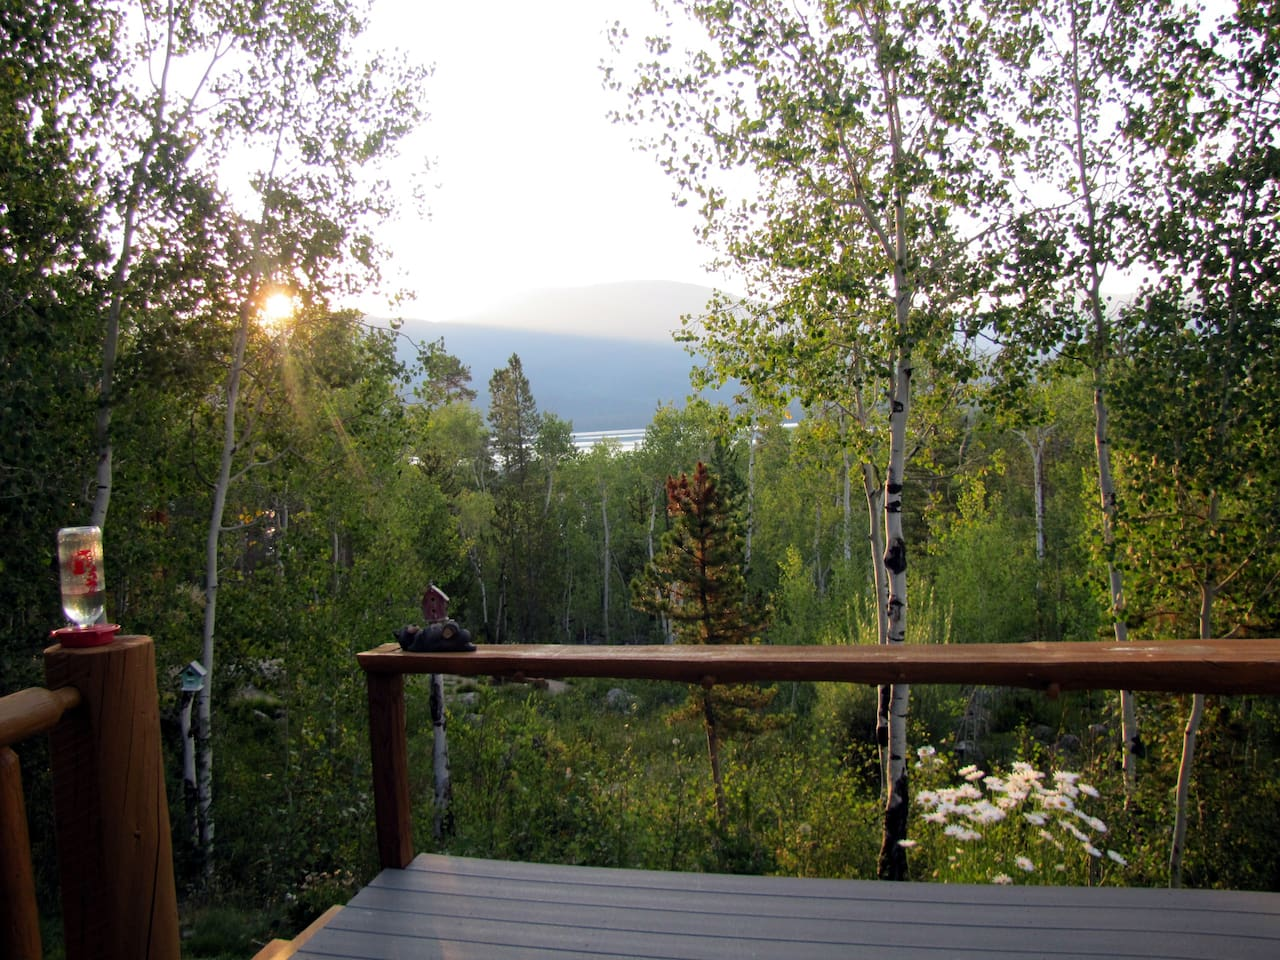 Summer mornings from the deck